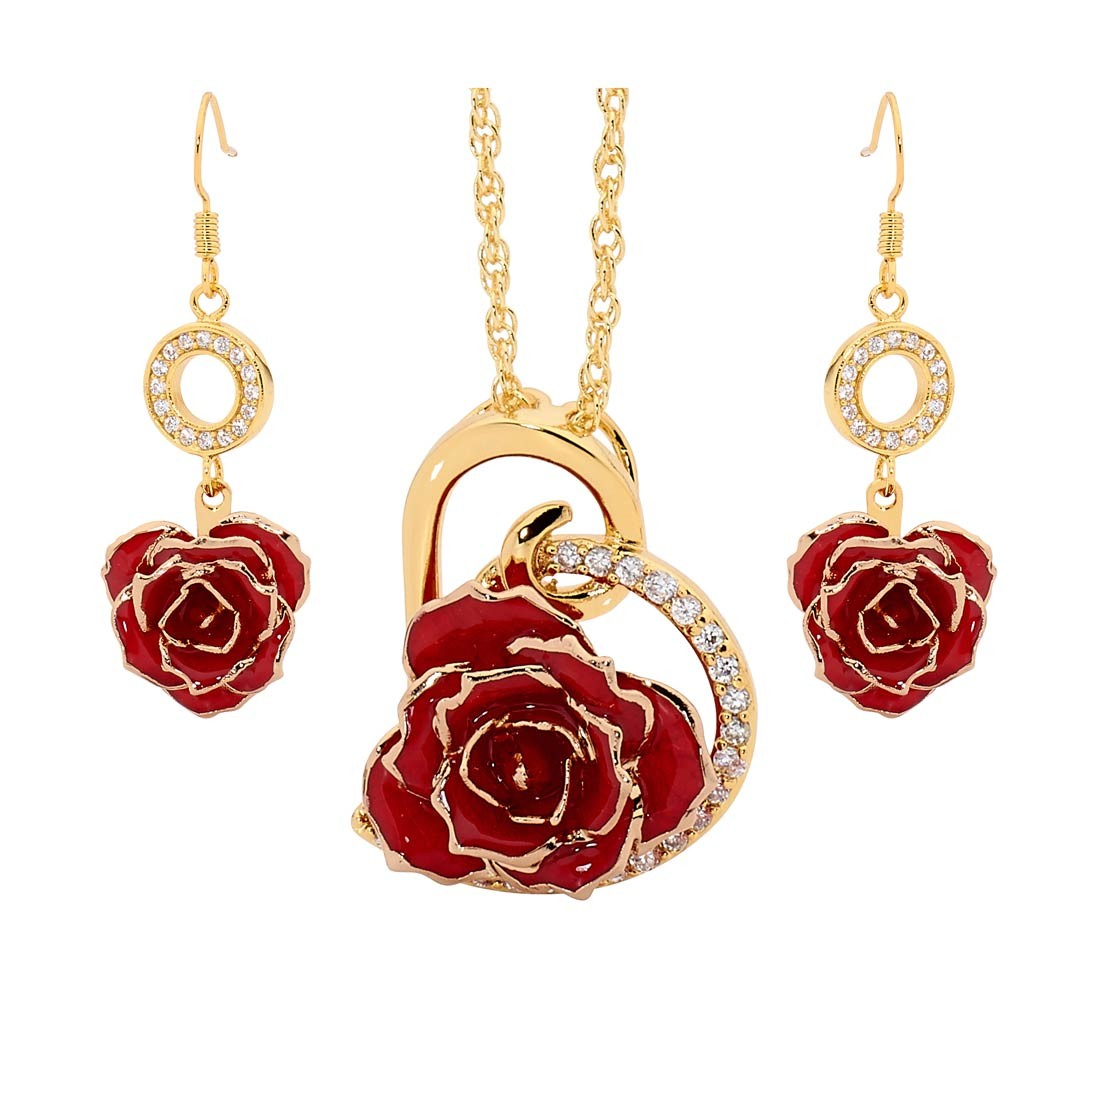 Gold Dipped Rose Amp Red Matched Jewelry Set In Heart Theme